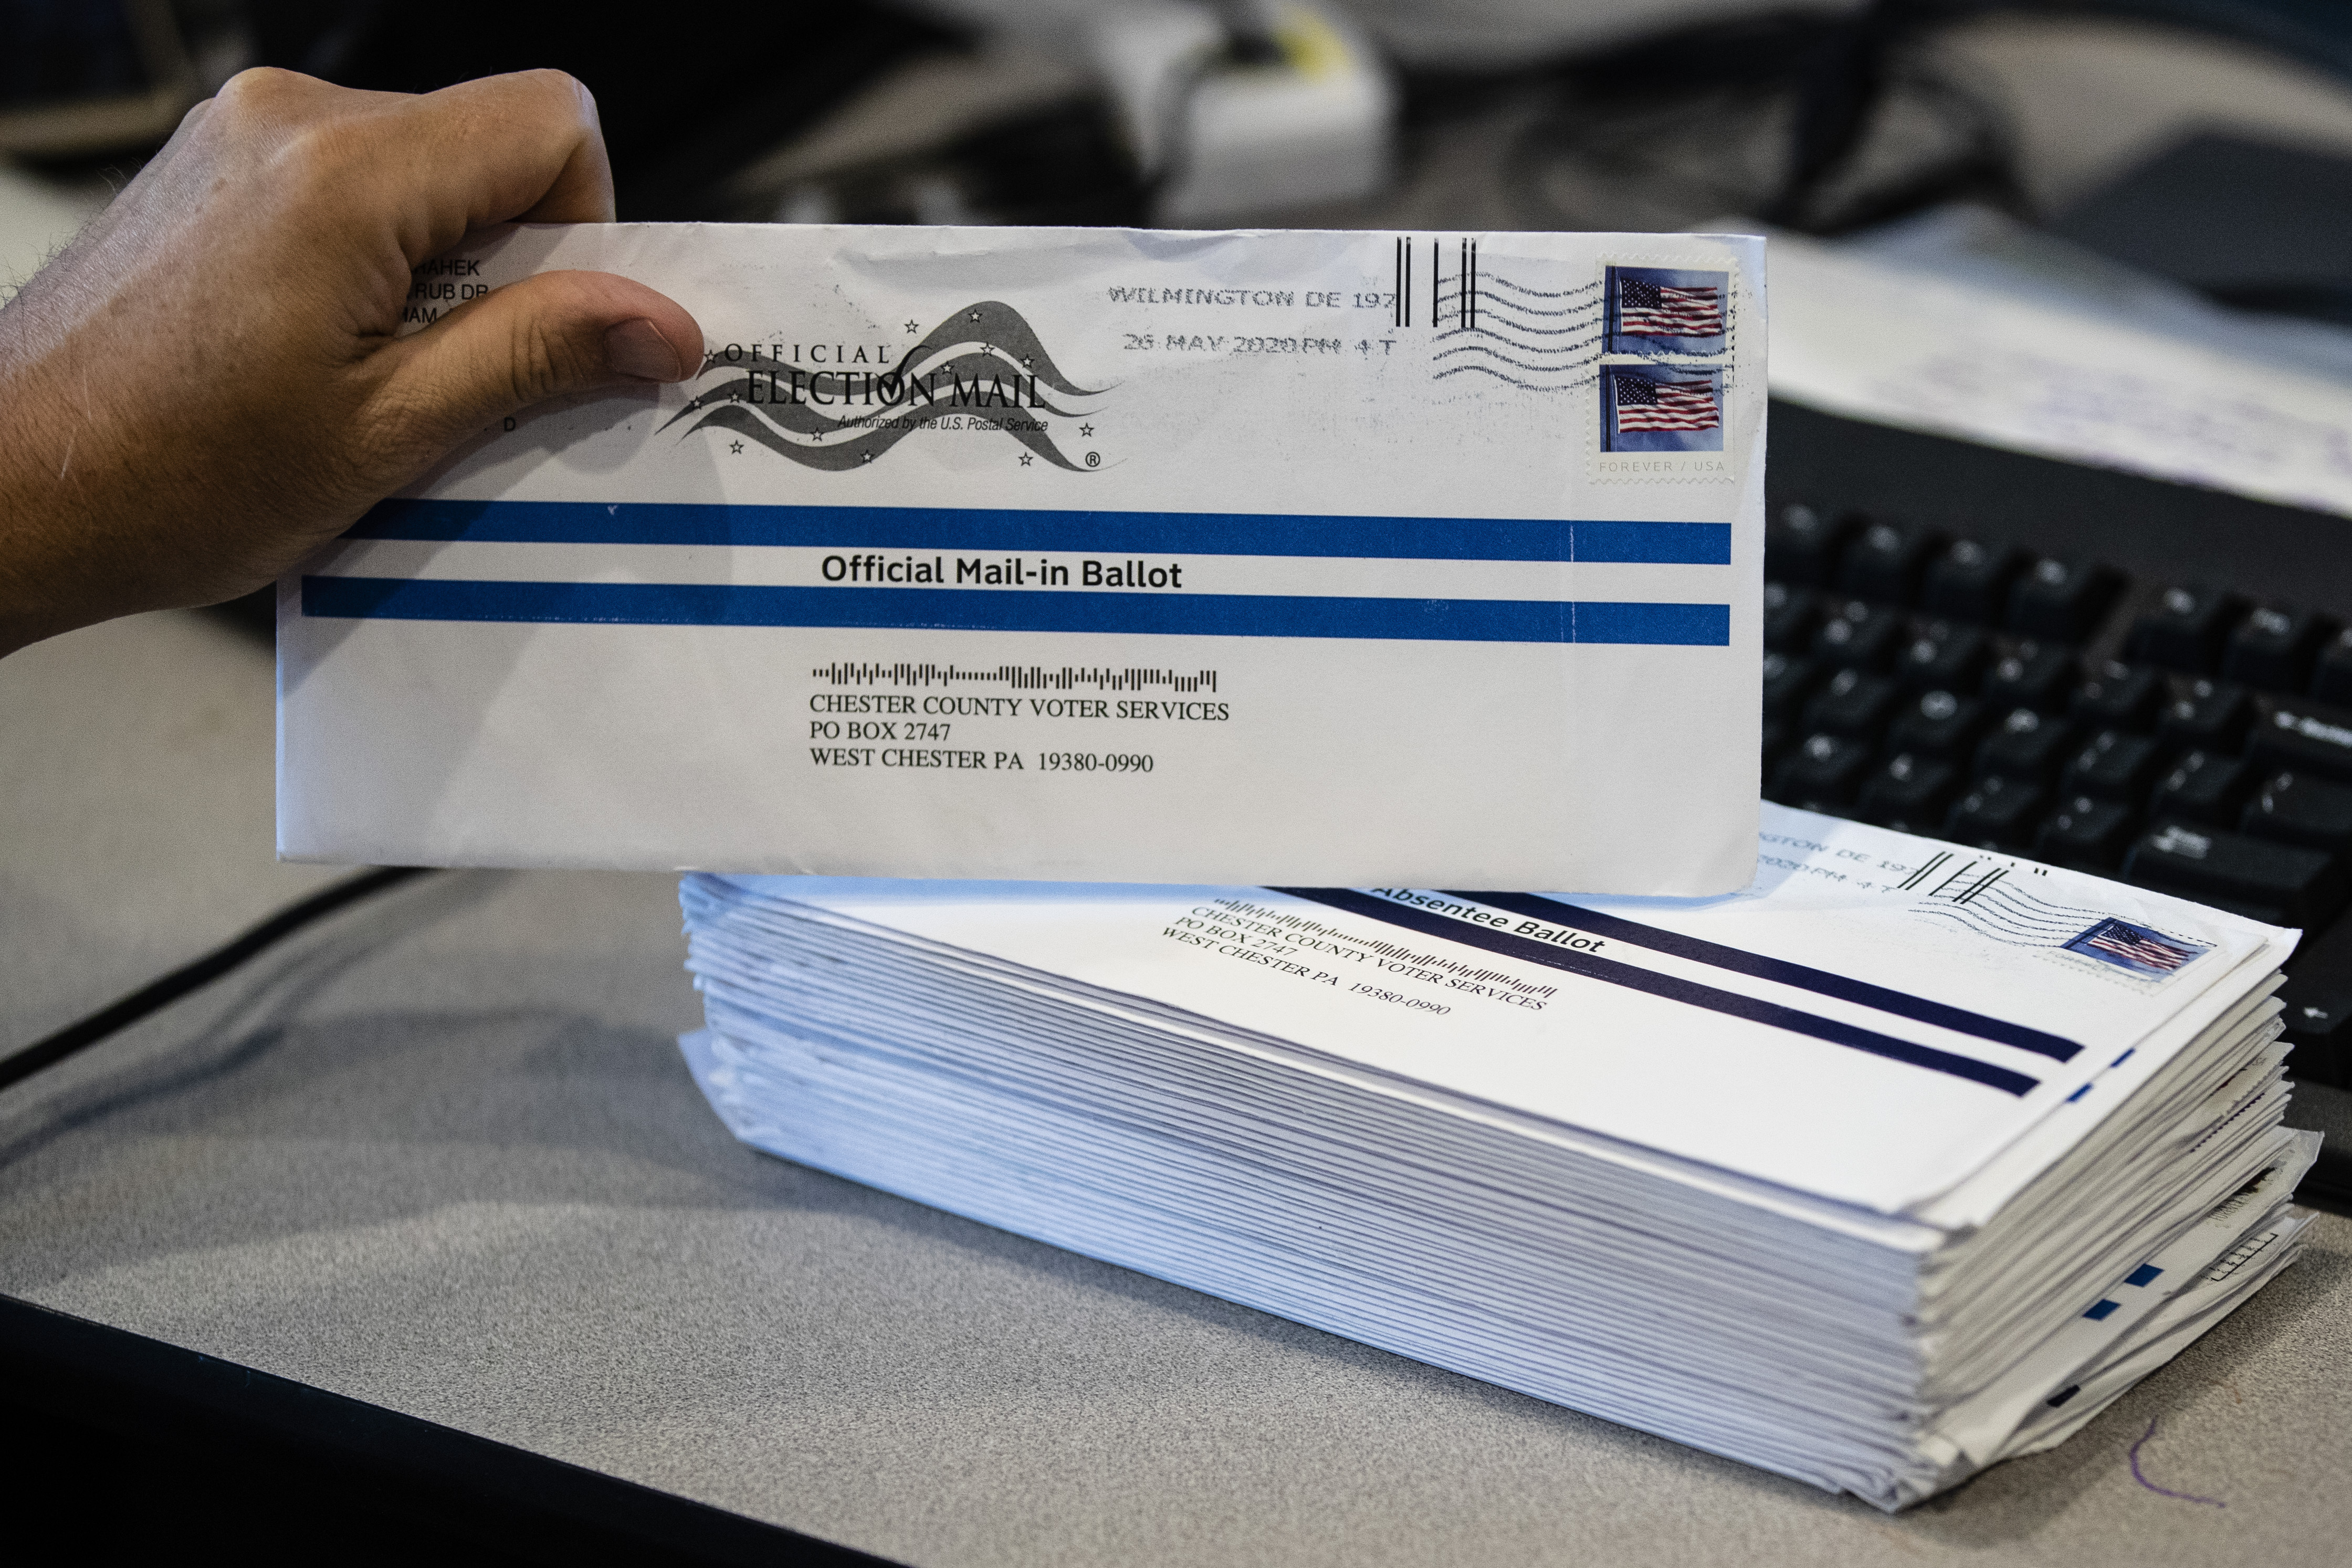 Pa. Asks Court to Extend Mail-In Voting Deadlines After Postal Service Warning